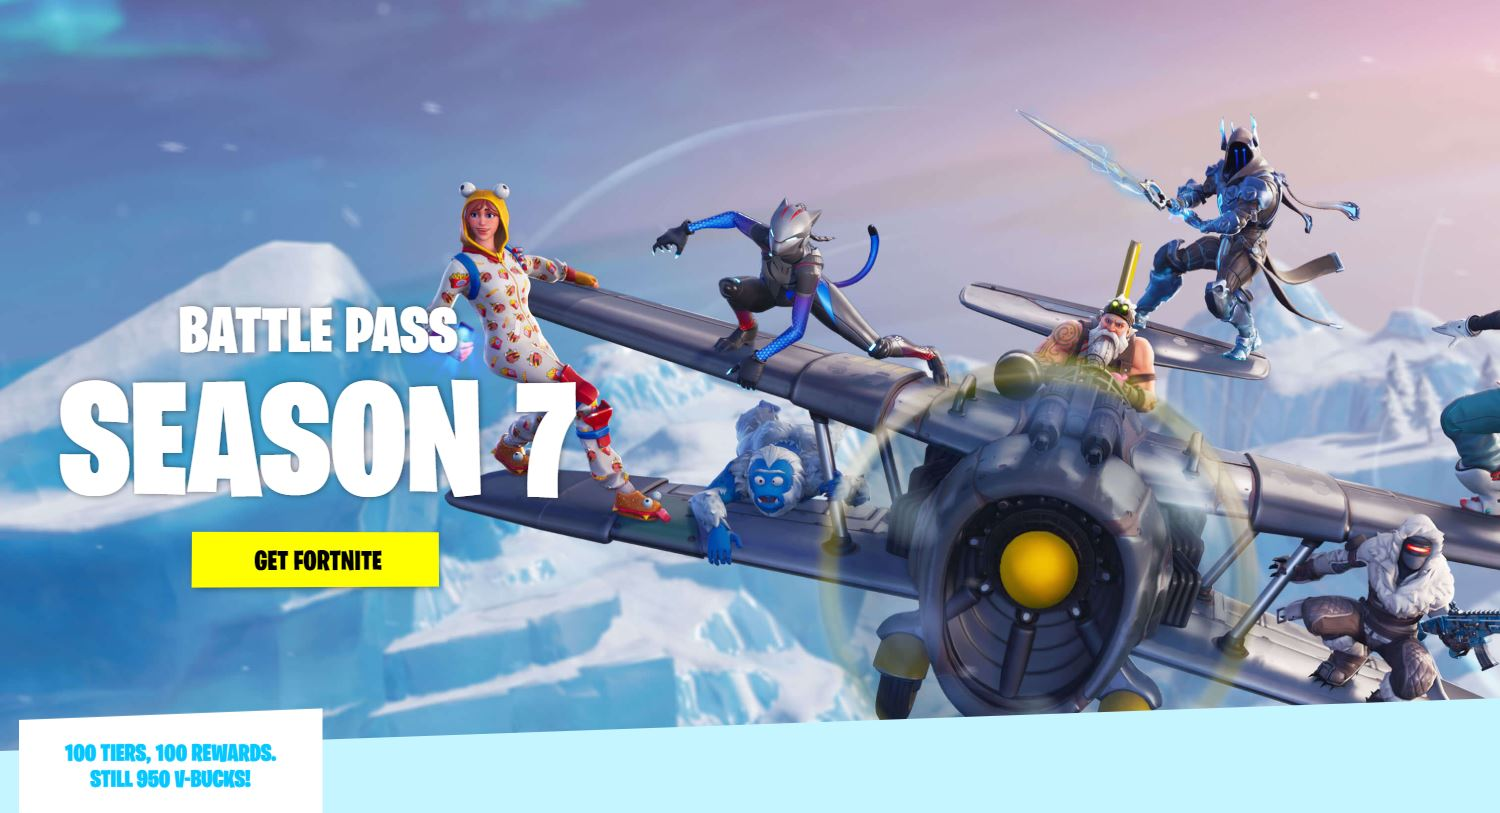 fortnite season 7 all battle pass items cosmetics and skins - fortnite saison 7